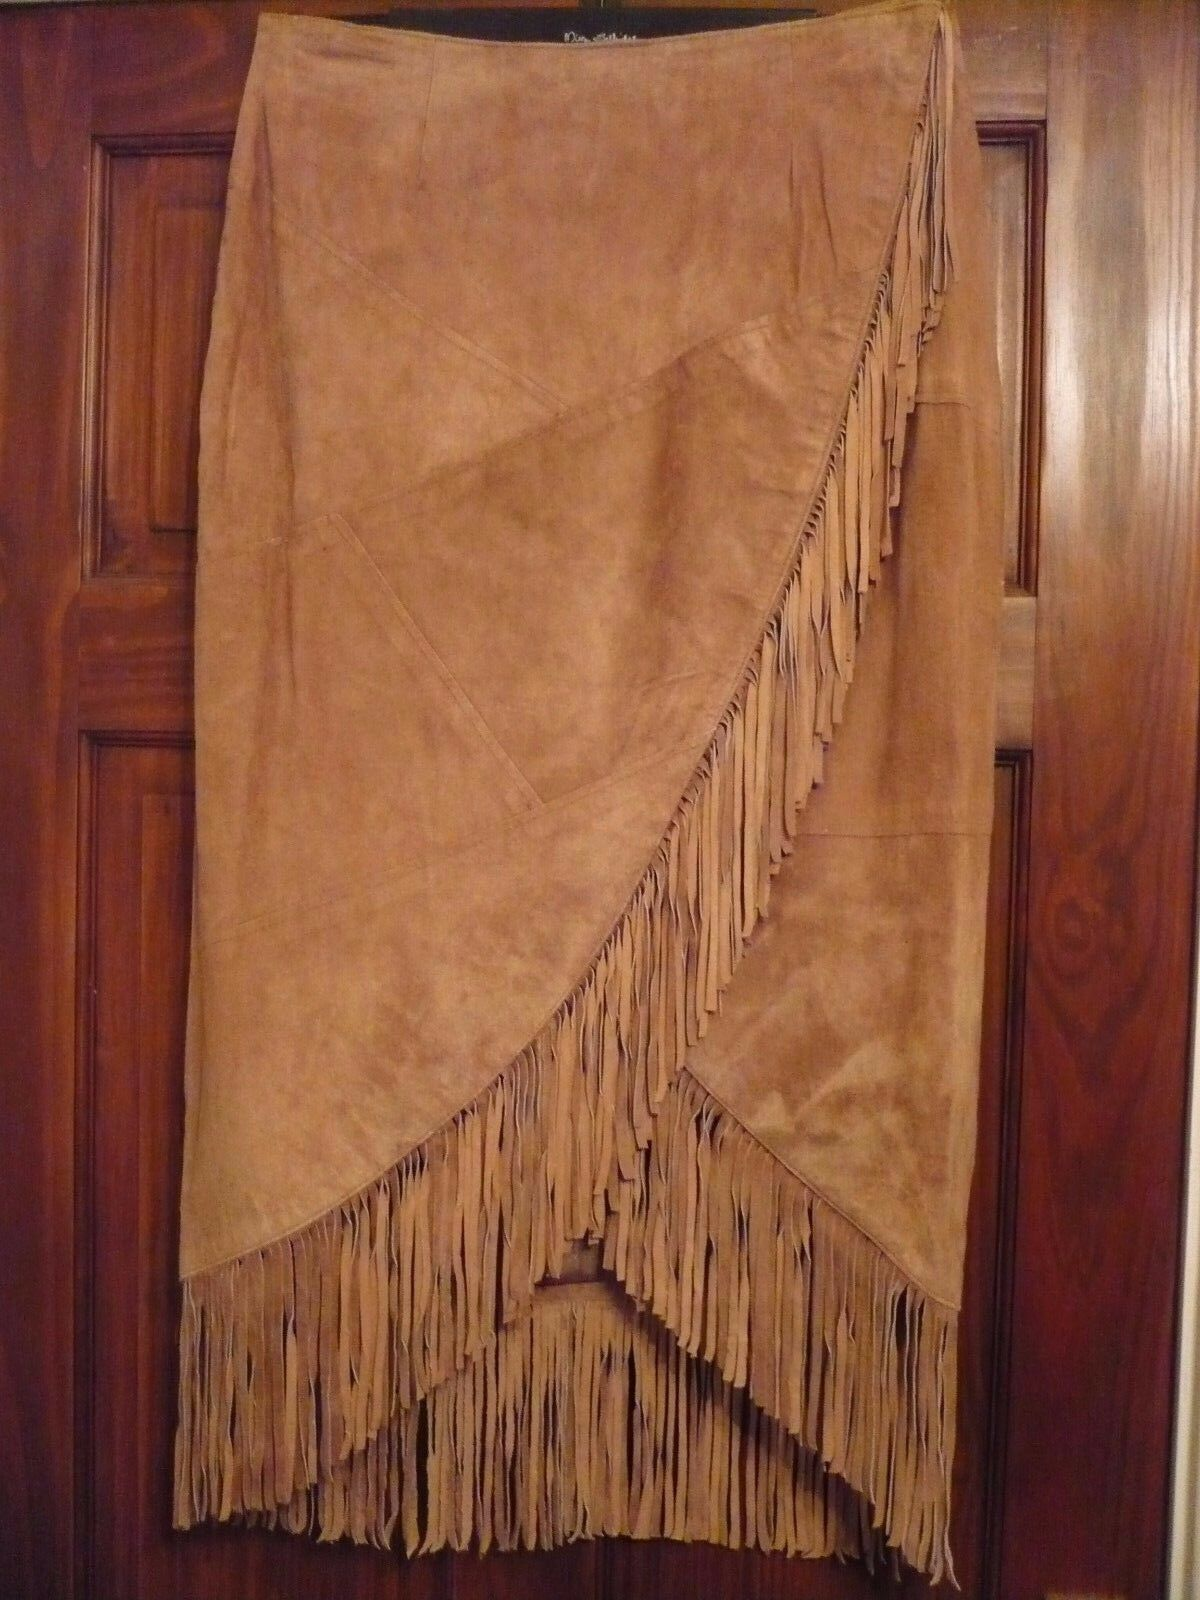 TOGETHER LUXURY SUEDE LEATHER FRINGED FULL WRAP AROUND SKIRT size M 12-14 BNEW